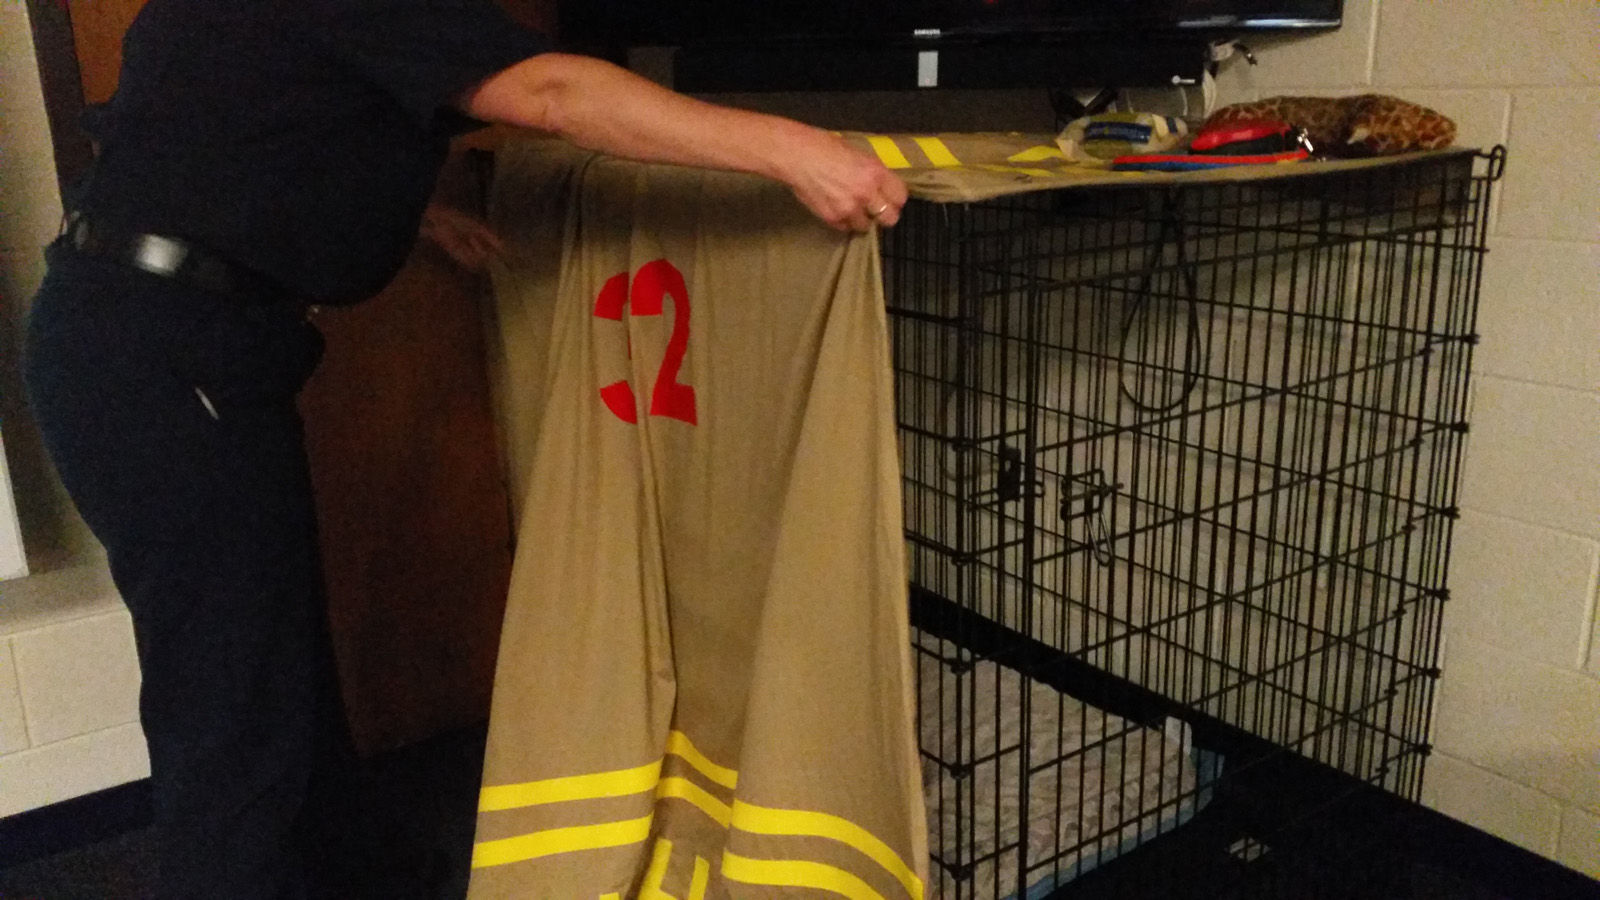 Some firefighters prefer a bed, but Wally prefers a crate. (WTOP/Kathy Stewart)